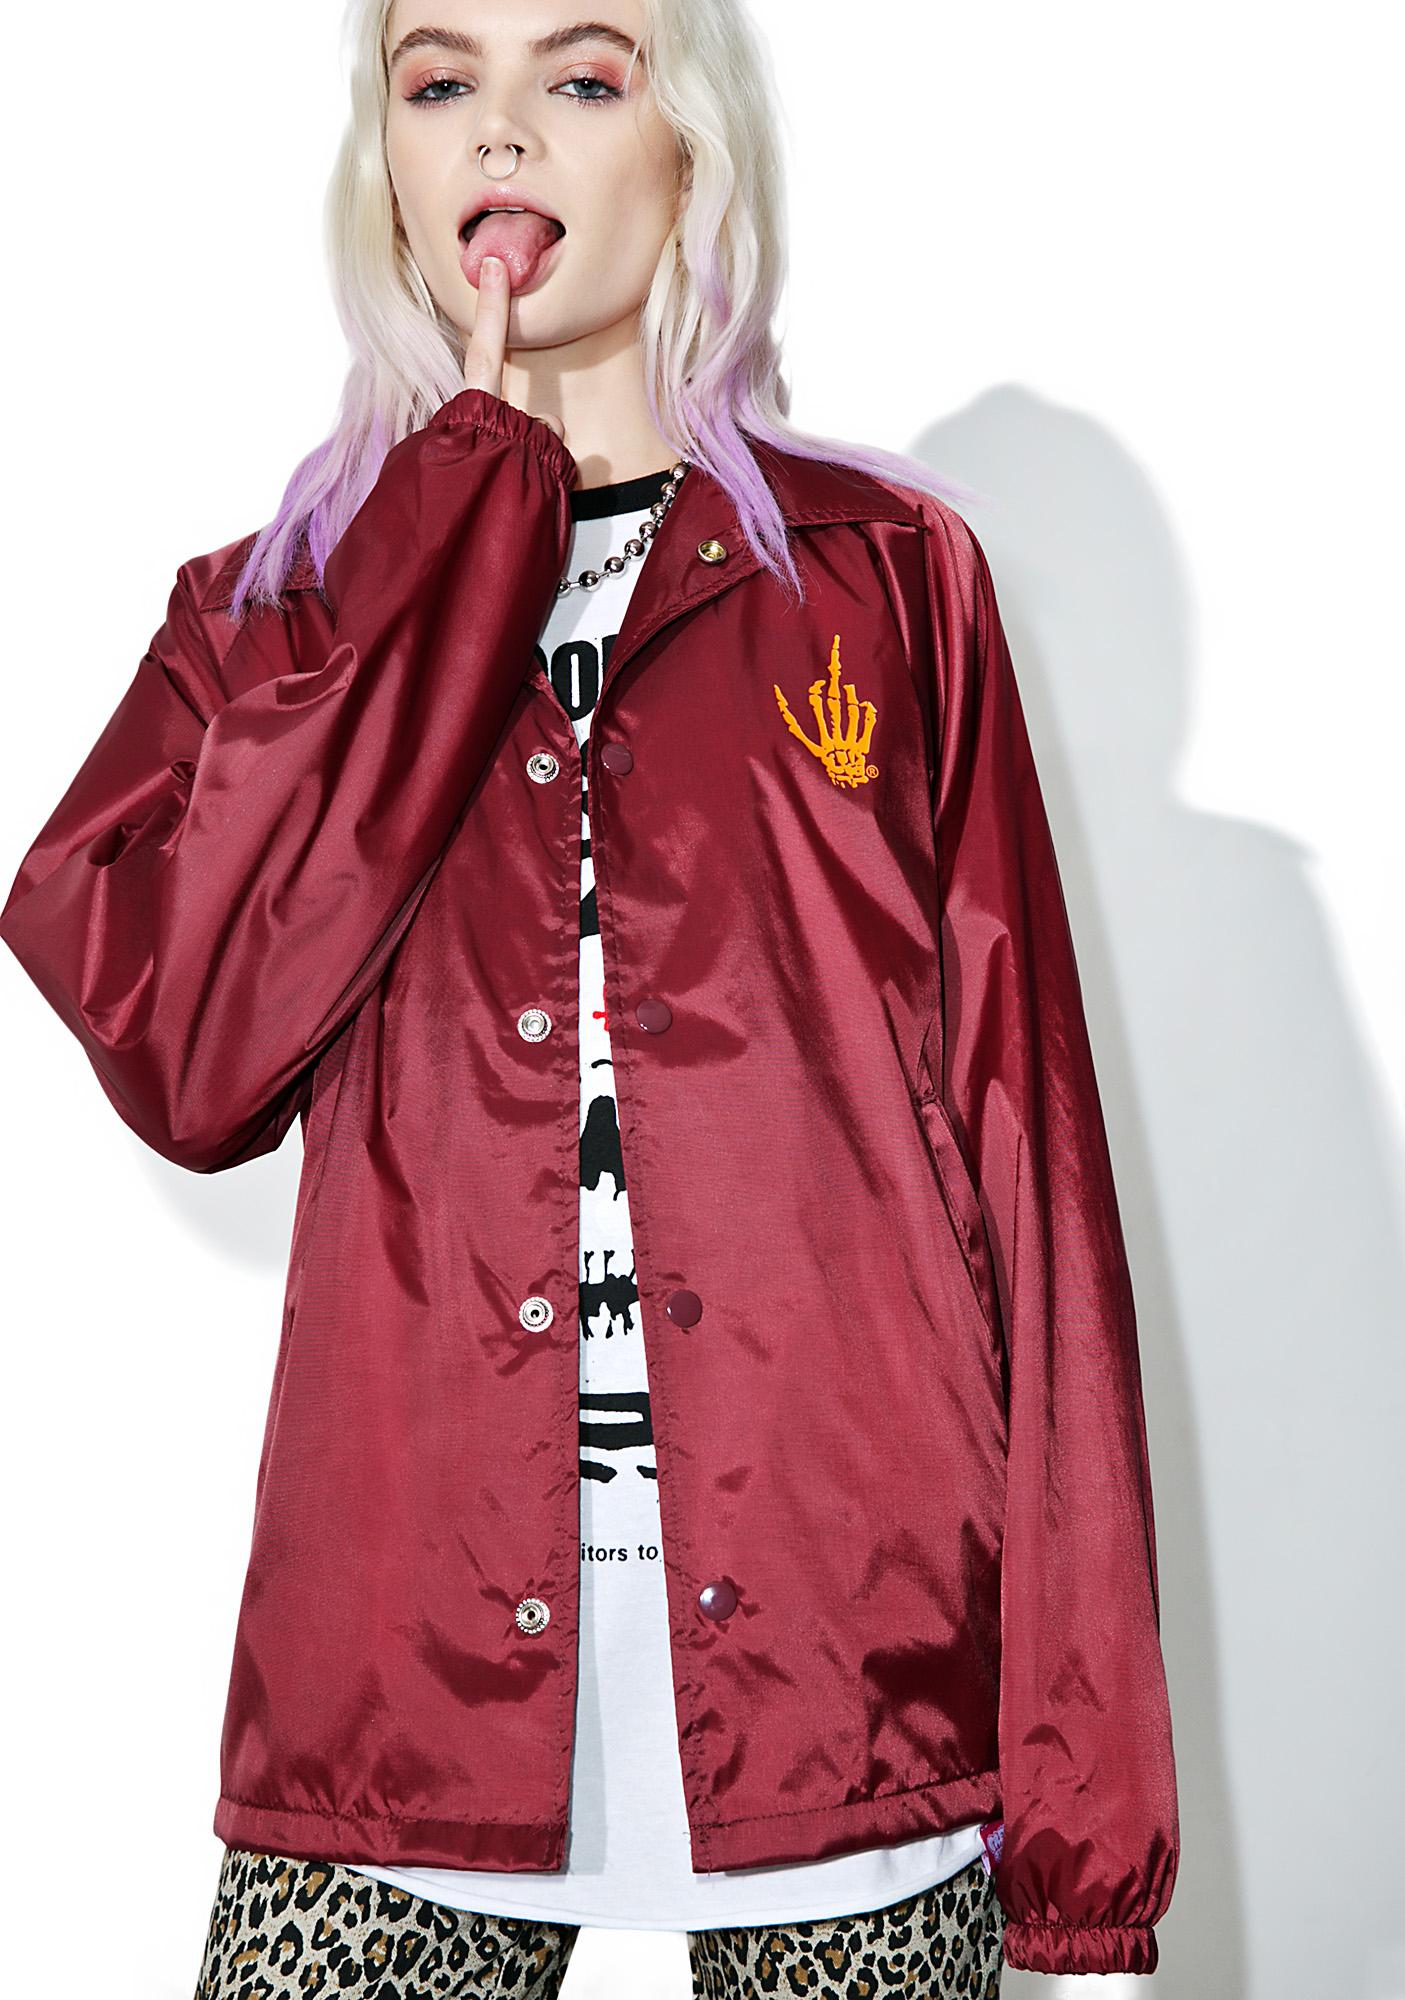 Creep Street Redd Creepy Florist Coaches Jacket